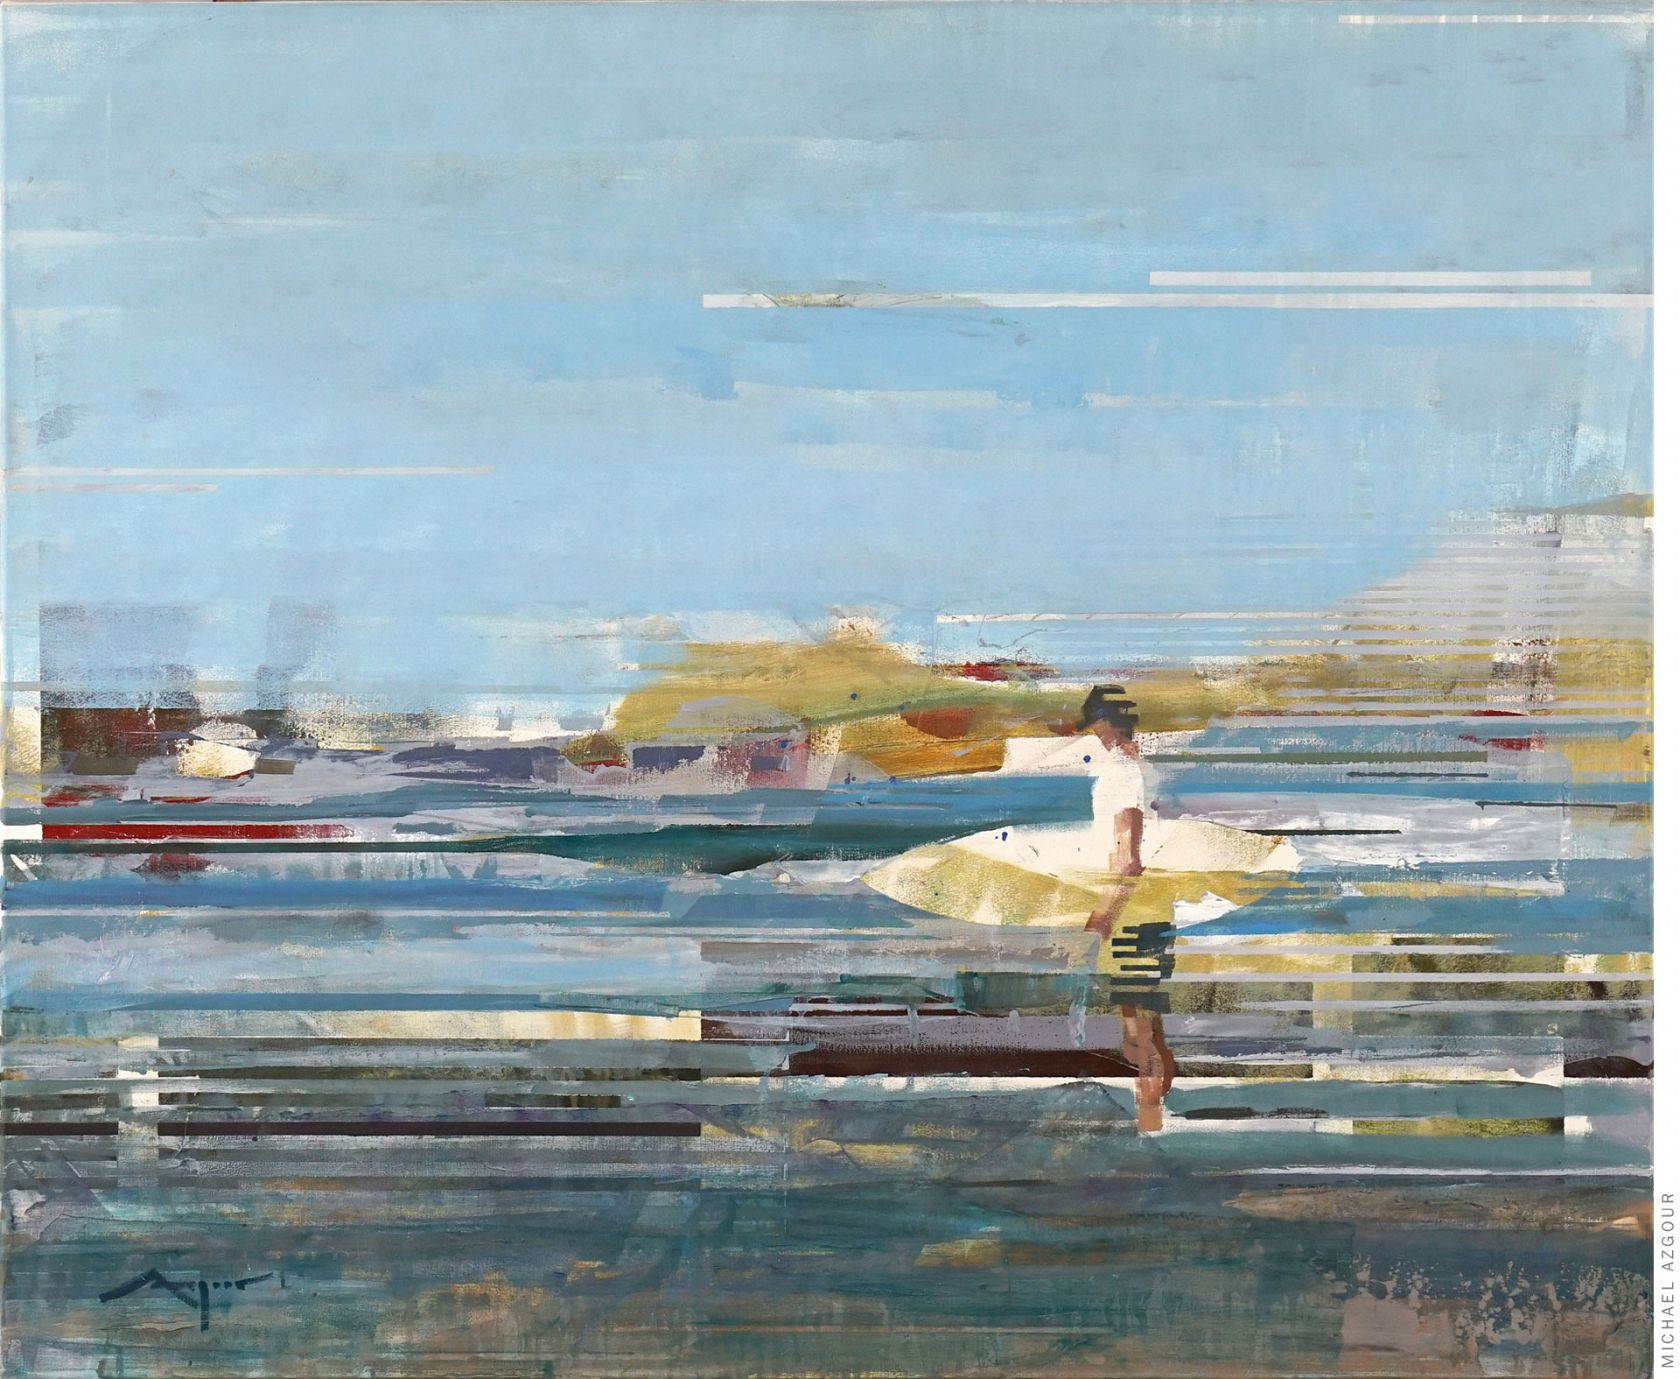 Abstract figurative painting by contemporary artist, Azgour, titled Surfer on the Shore, depicting a surfer standing on the shore looking out at the surf